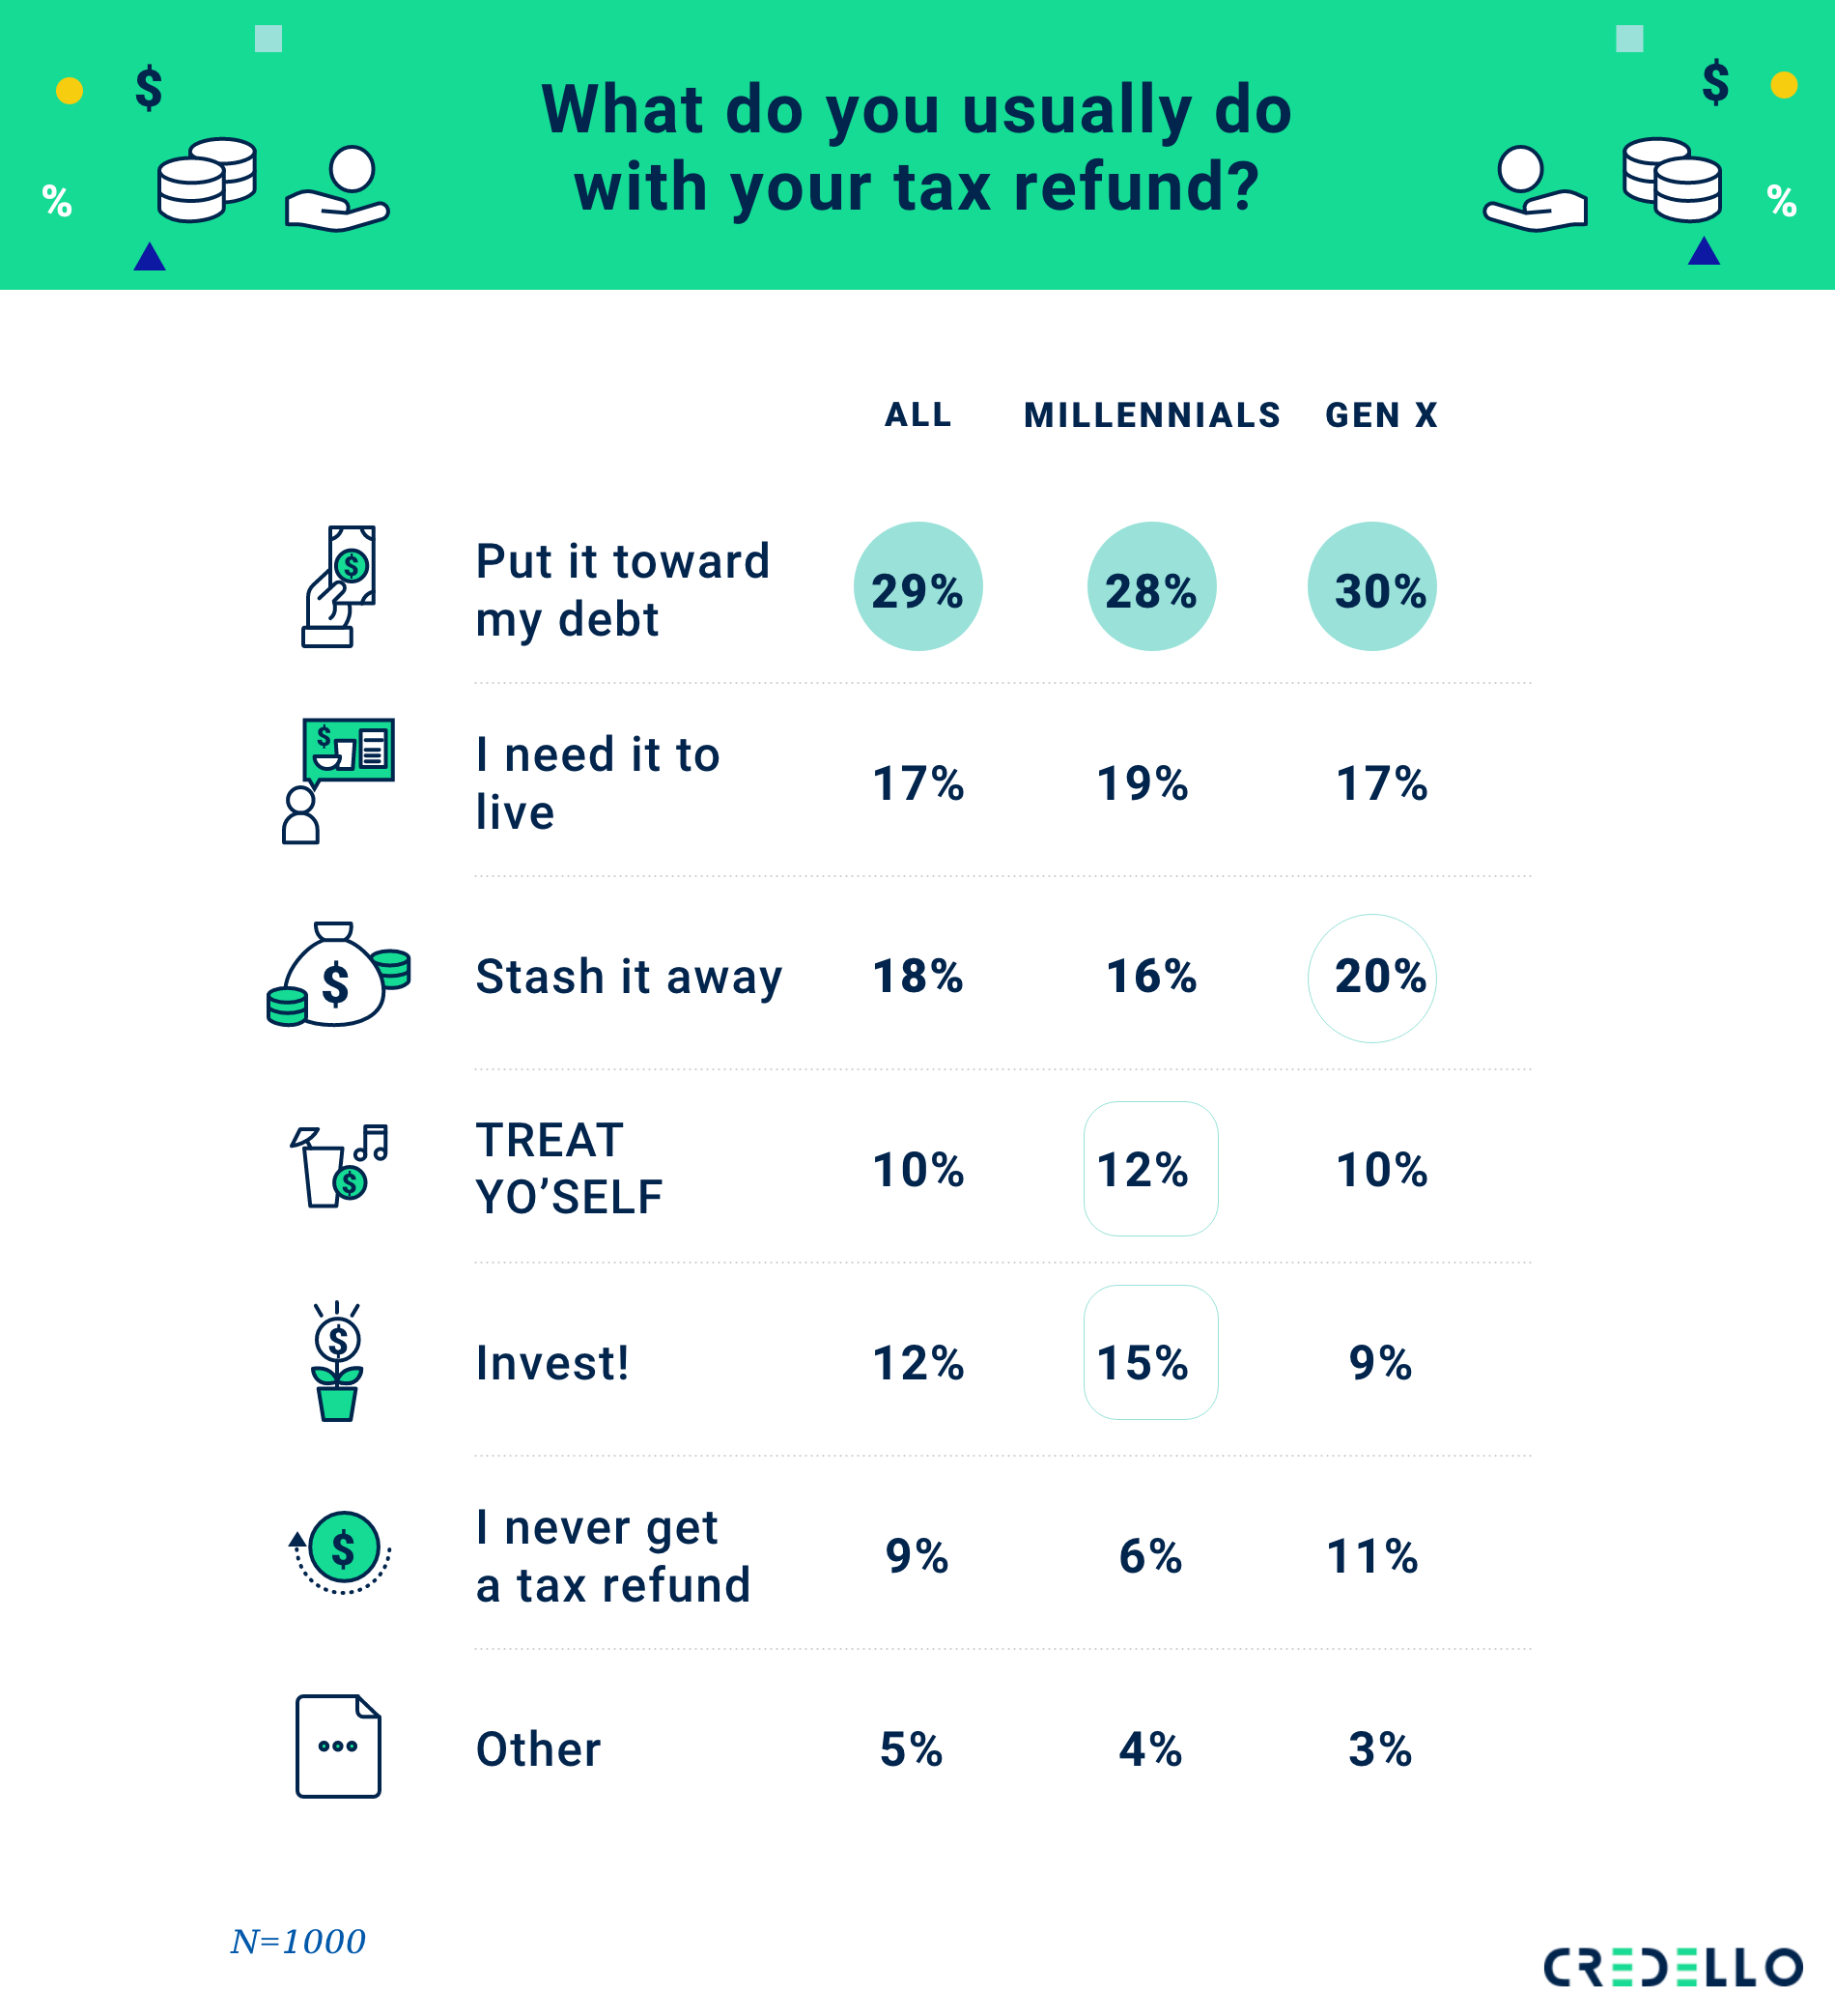 How do people use their tax refunds